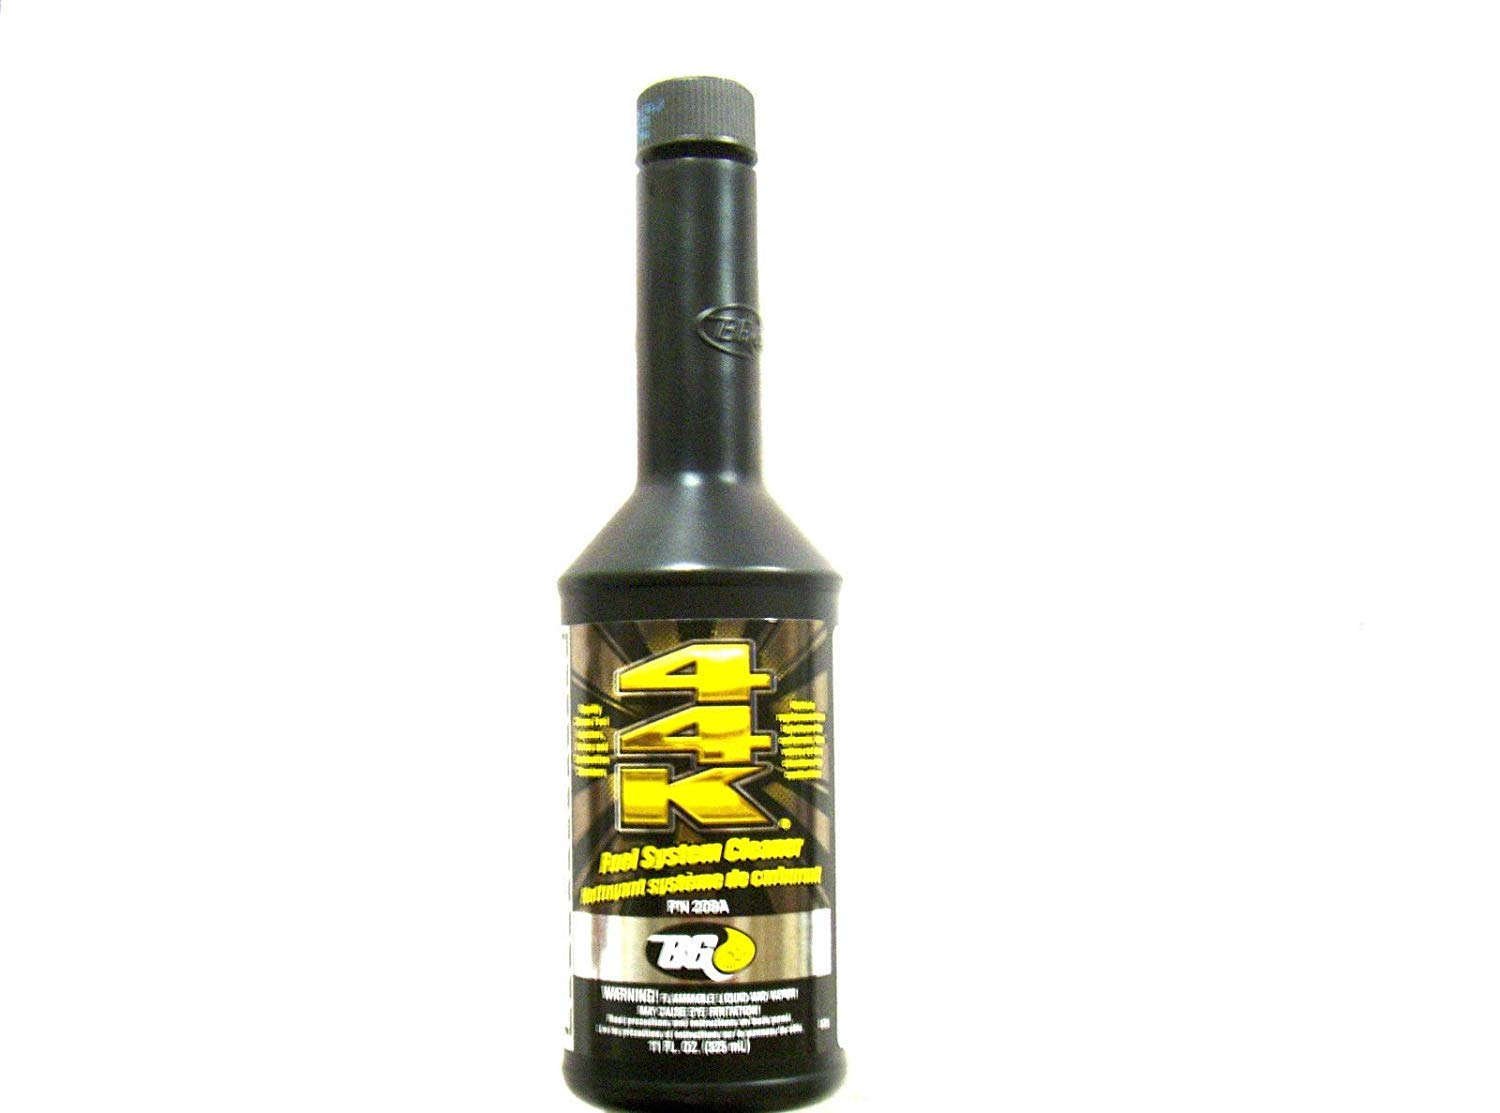 BG44K Fuel System Cleaner 11oz Bottle by BG